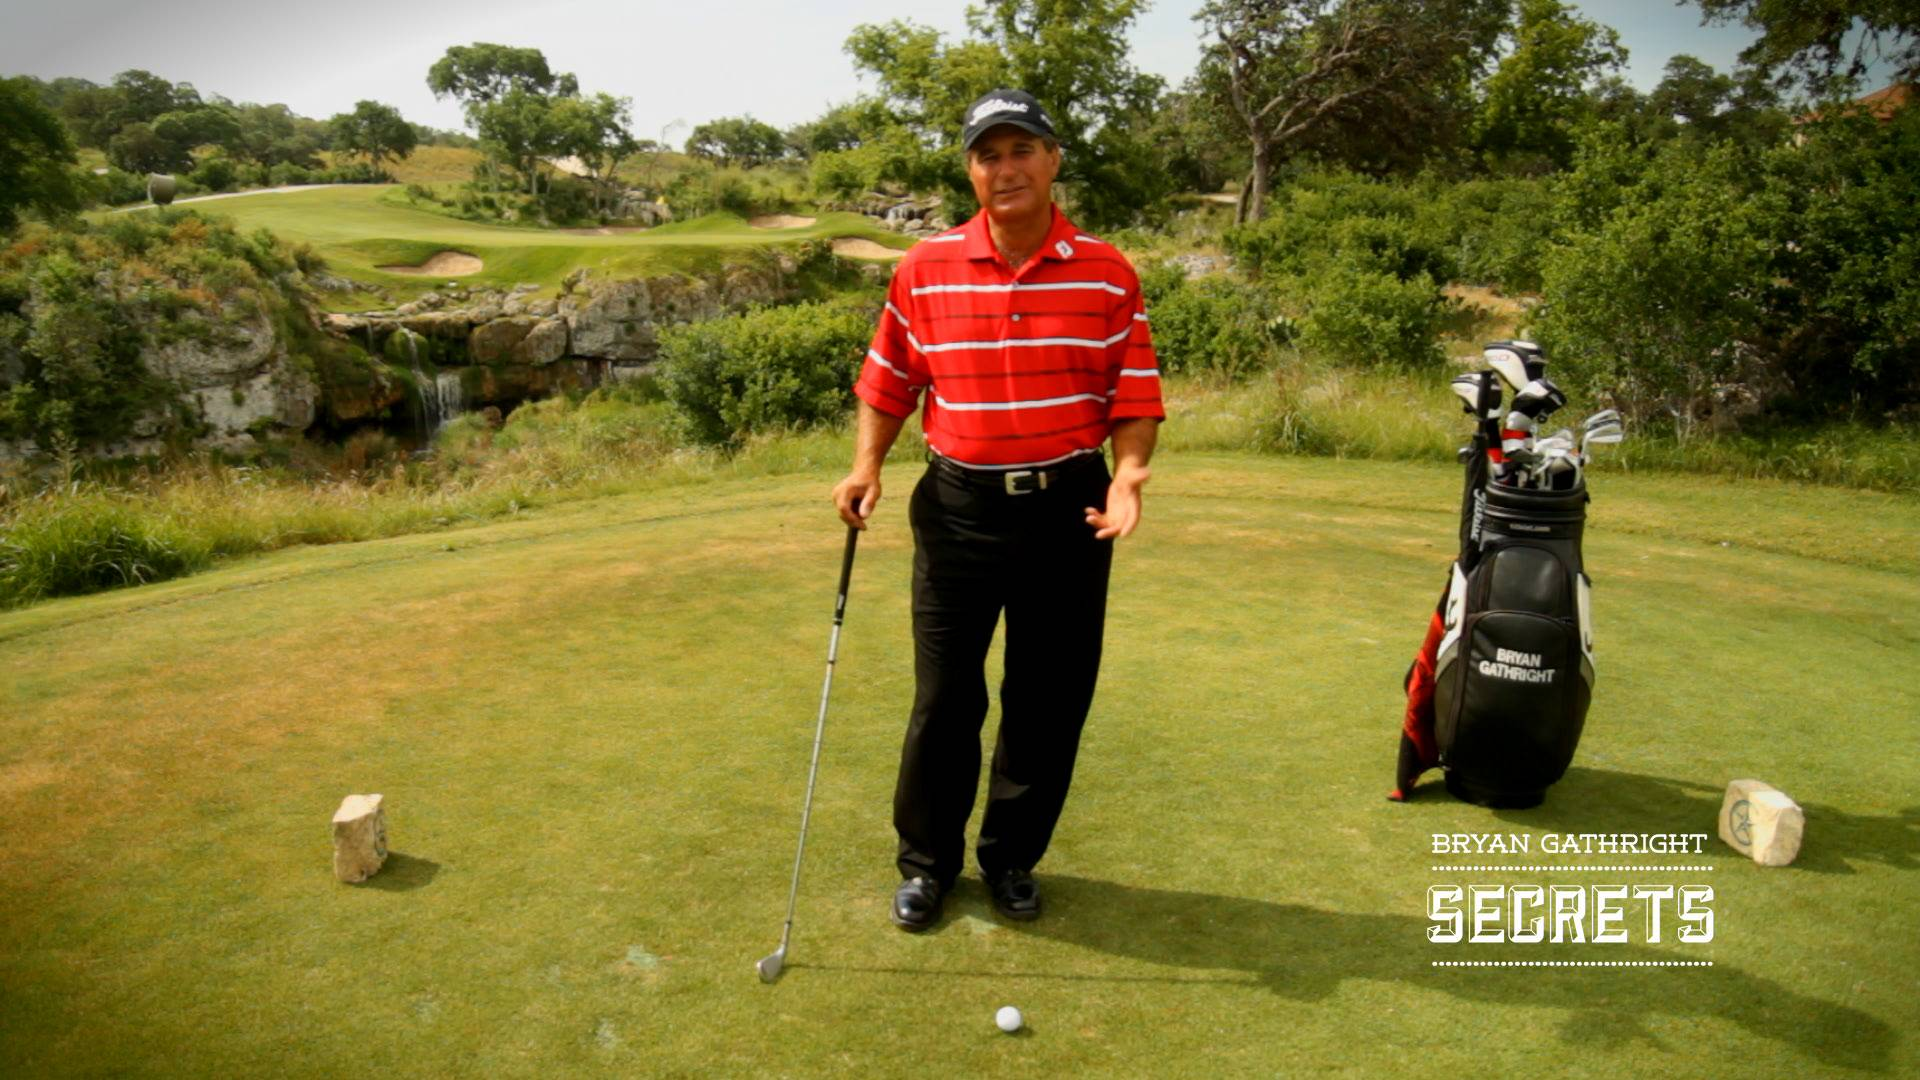 The 9 Secrets of Golf from Harvey Penick